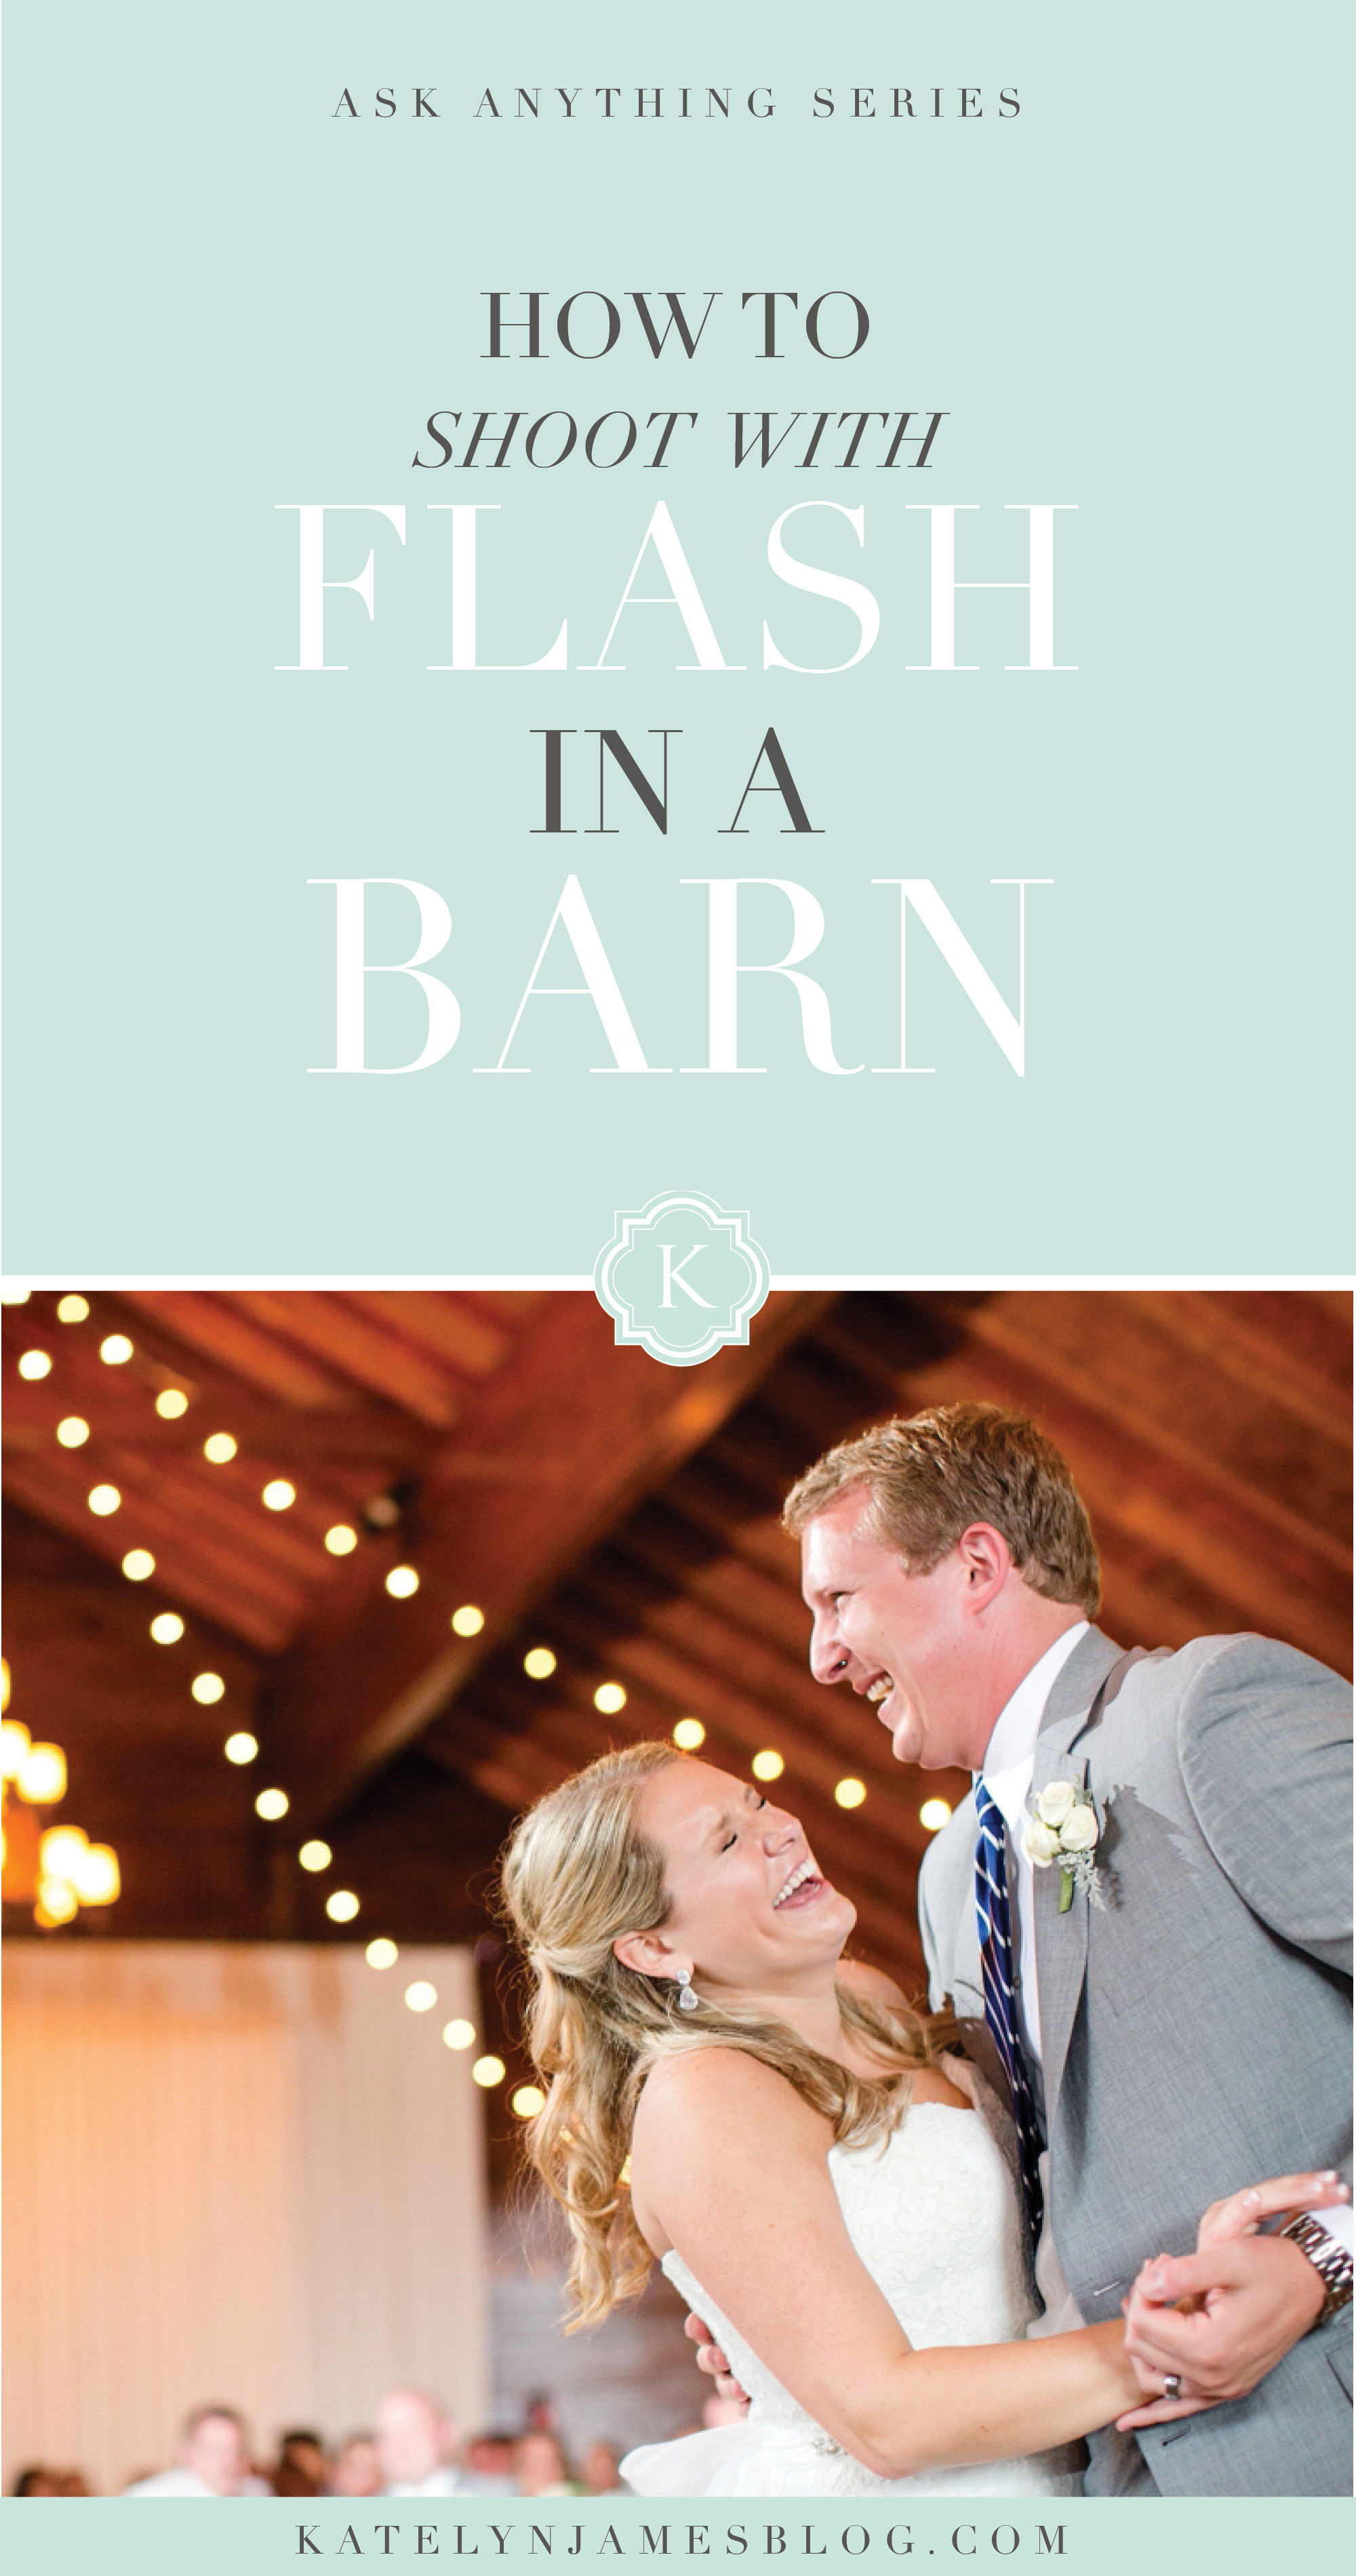 How To Shoot With Flash In A Barn by Katelyn James Photography